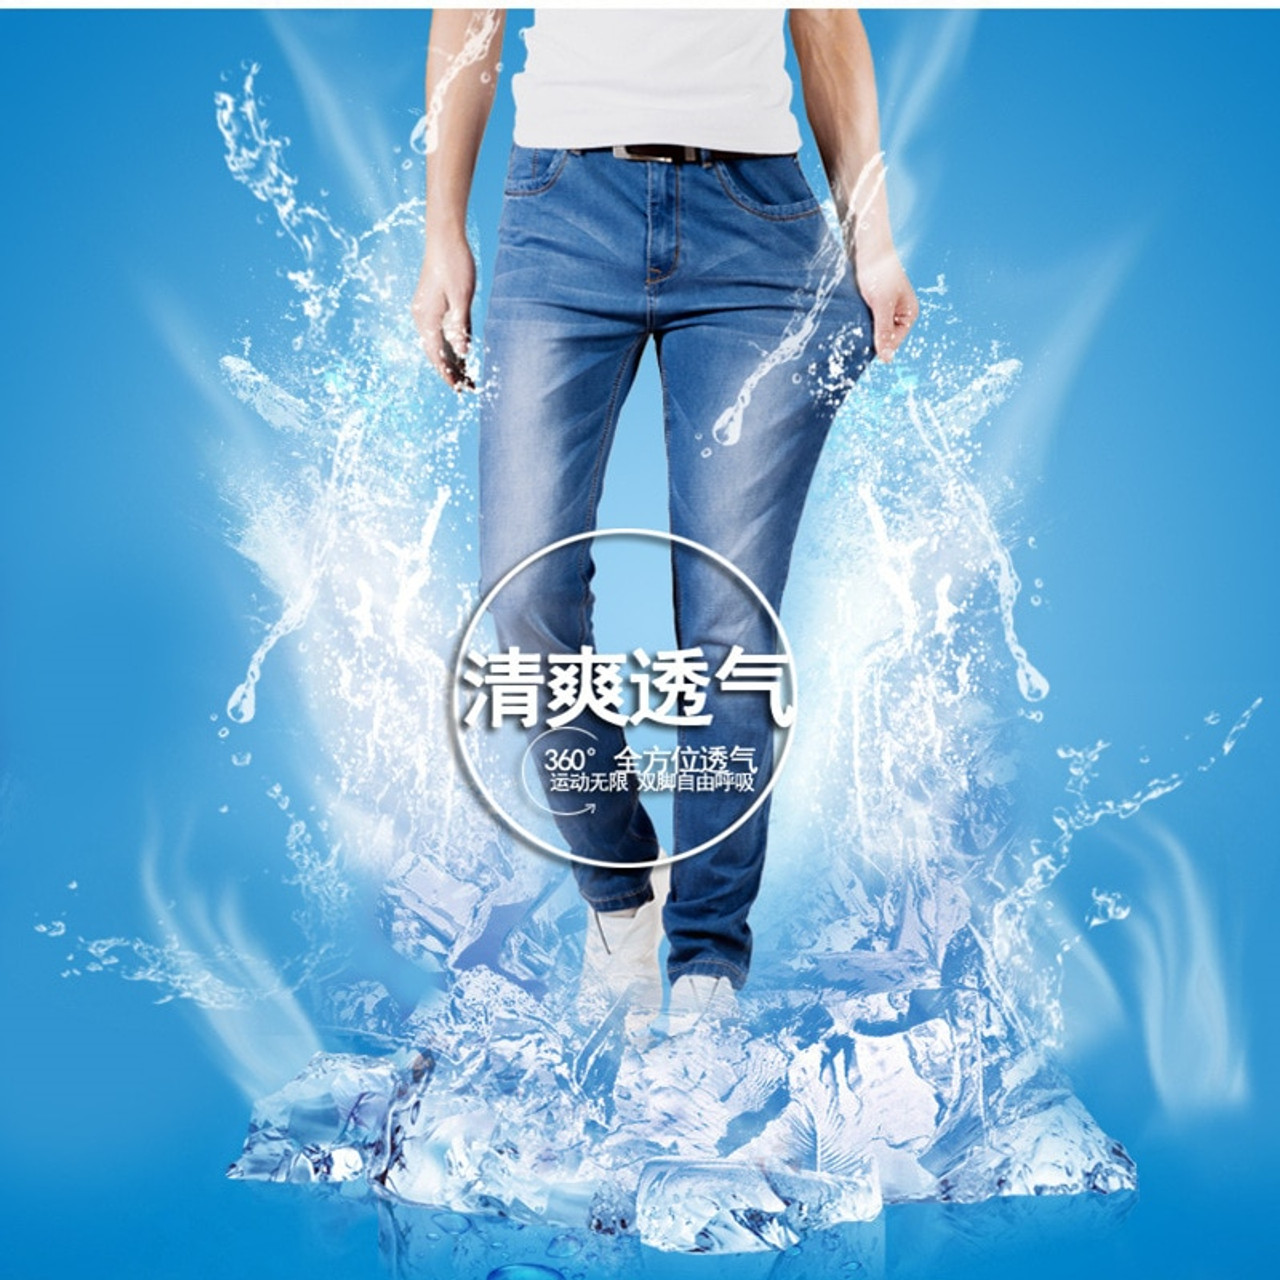 20e168dc ... Summer New Stretch Cotton Breathable And Comfortable Jeans Fashion  Casual Men's Lightweight Trousers Wholesale ...